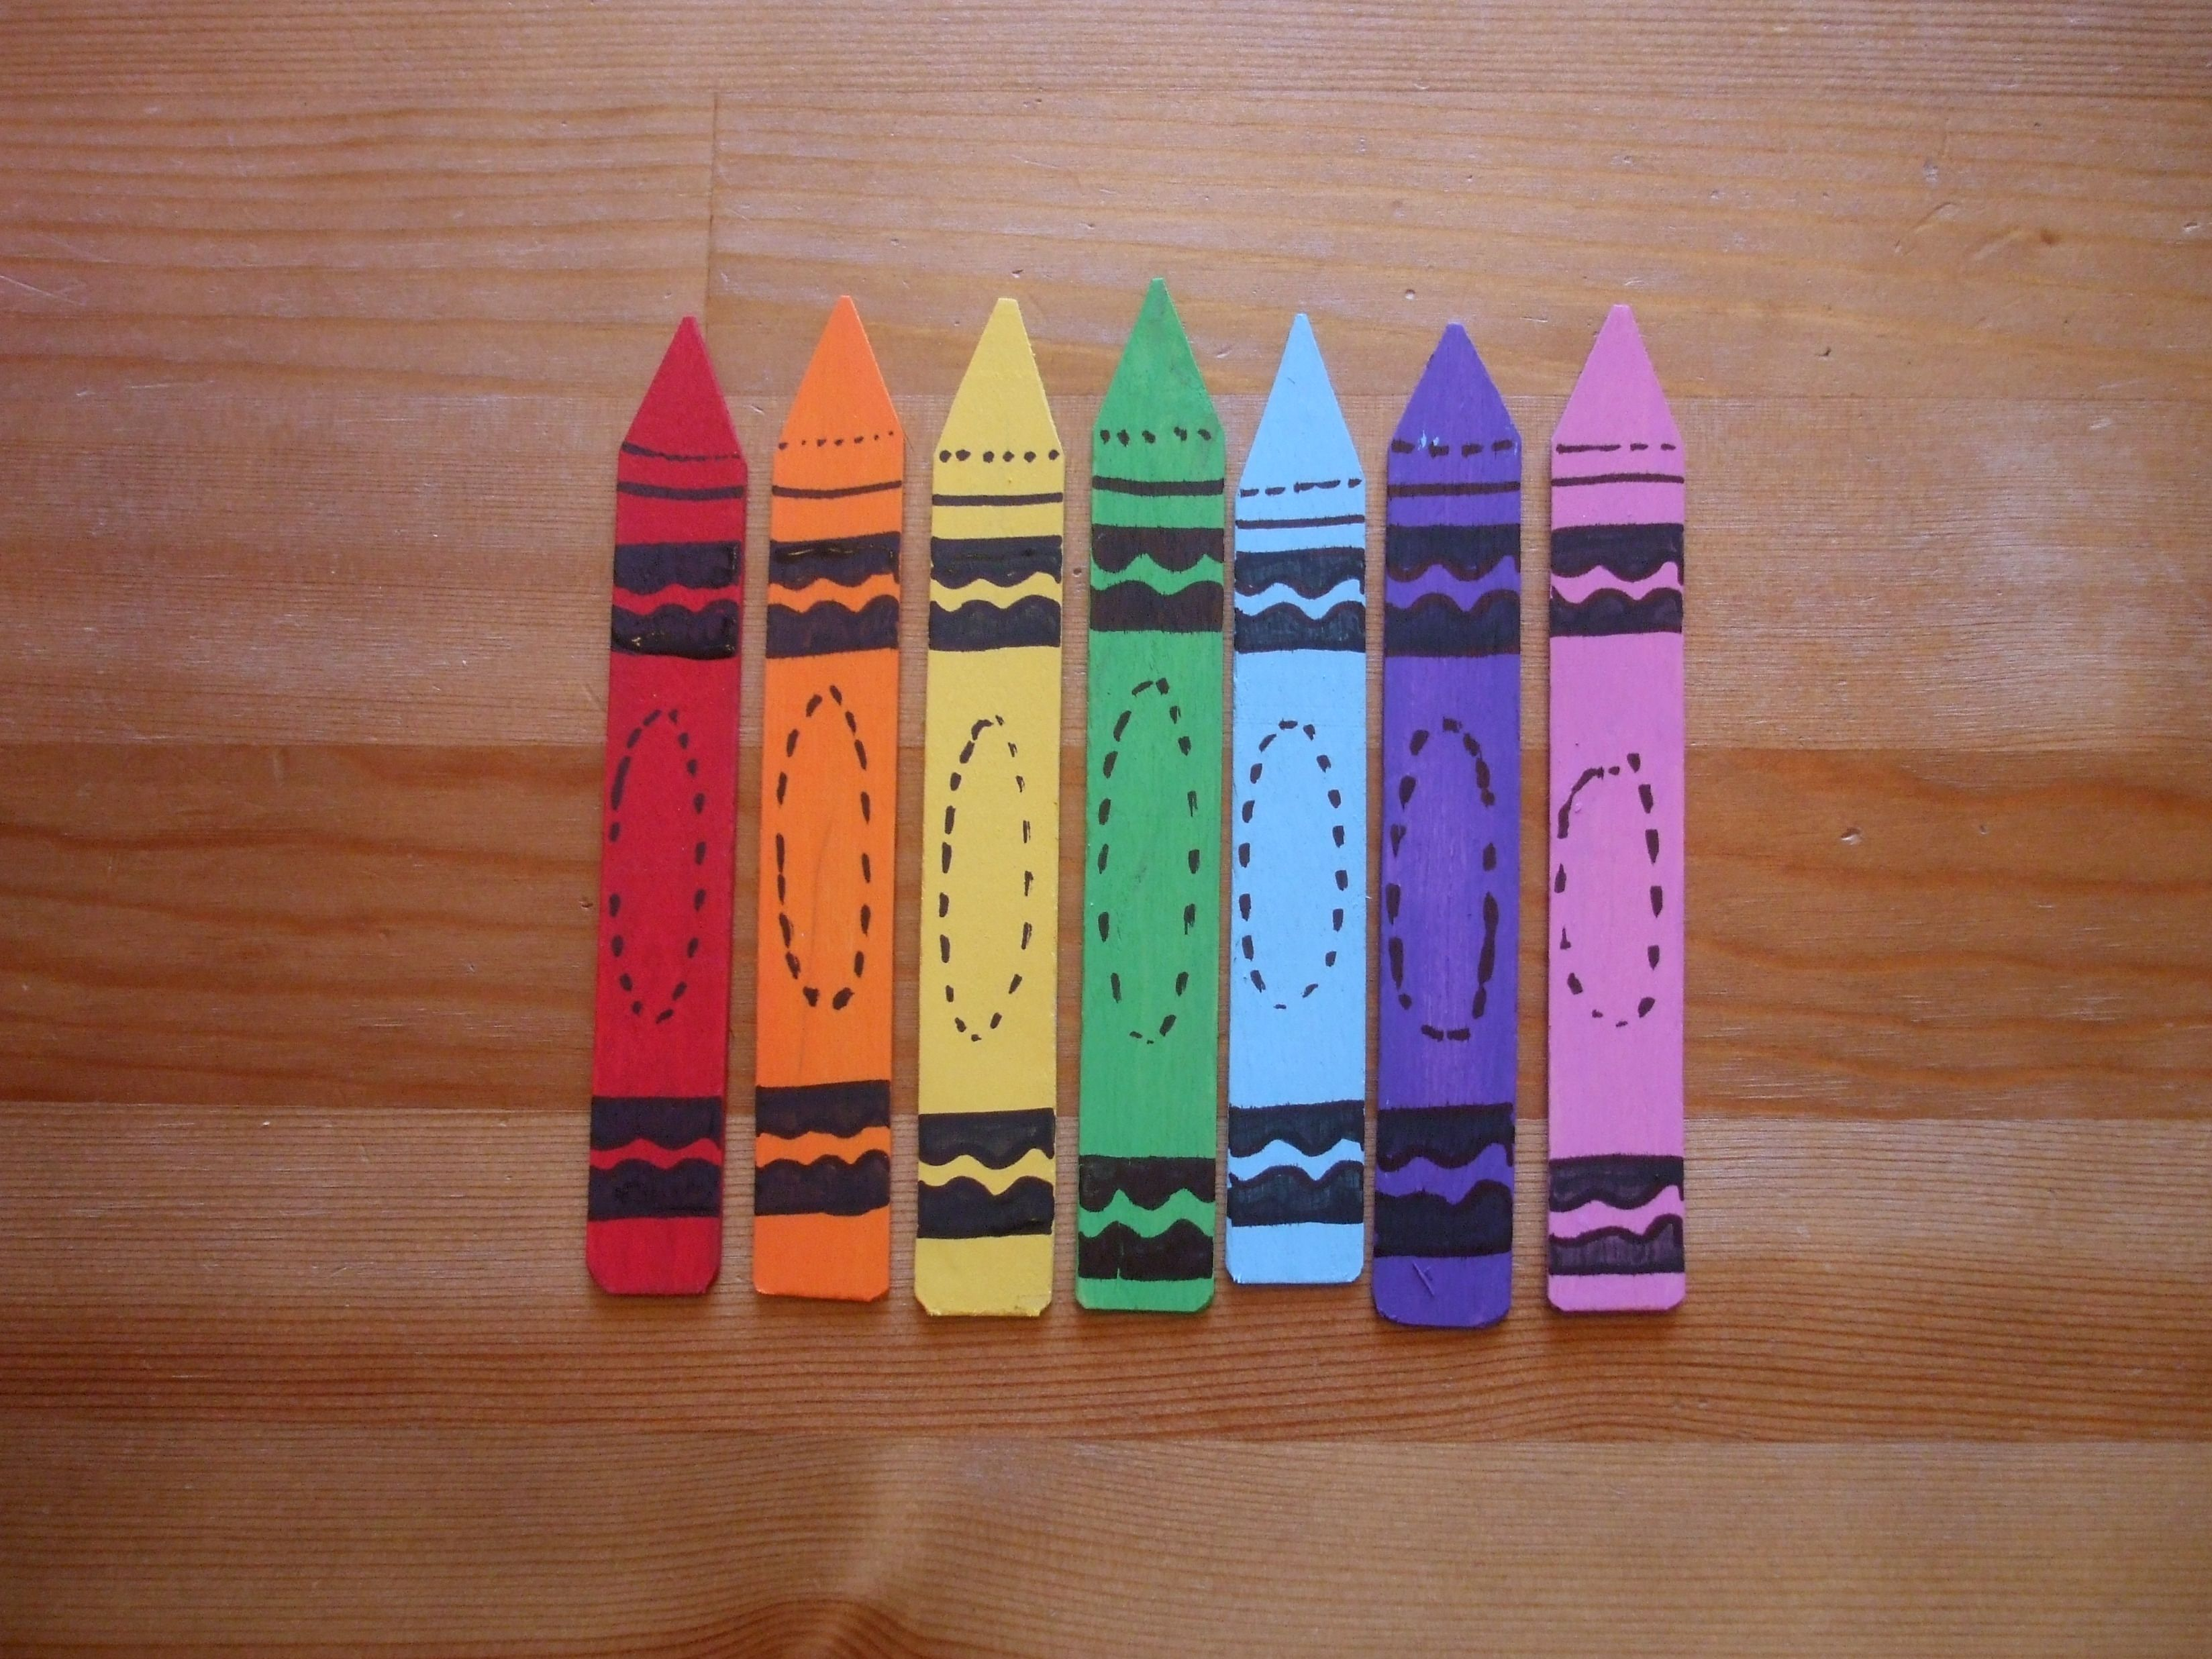 Magnetic Crayon Nametags Made Out Of Large Popsicle Sticks